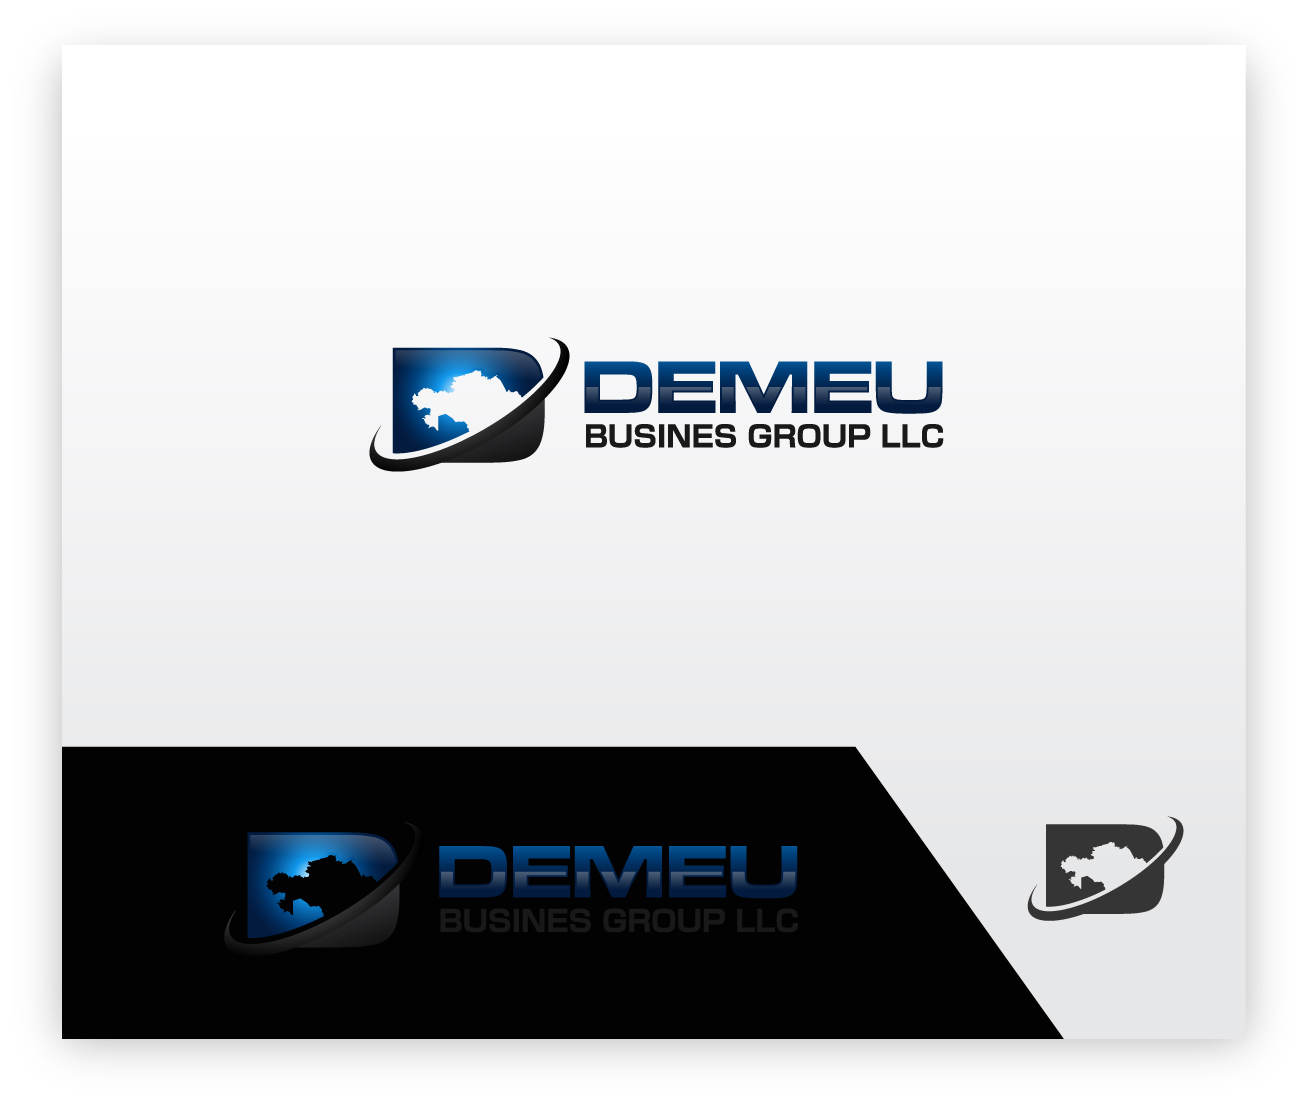 Logo Design by zoiDesign - Entry No. 111 in the Logo Design Contest Captivating Logo Design for DEMEU Business Group.